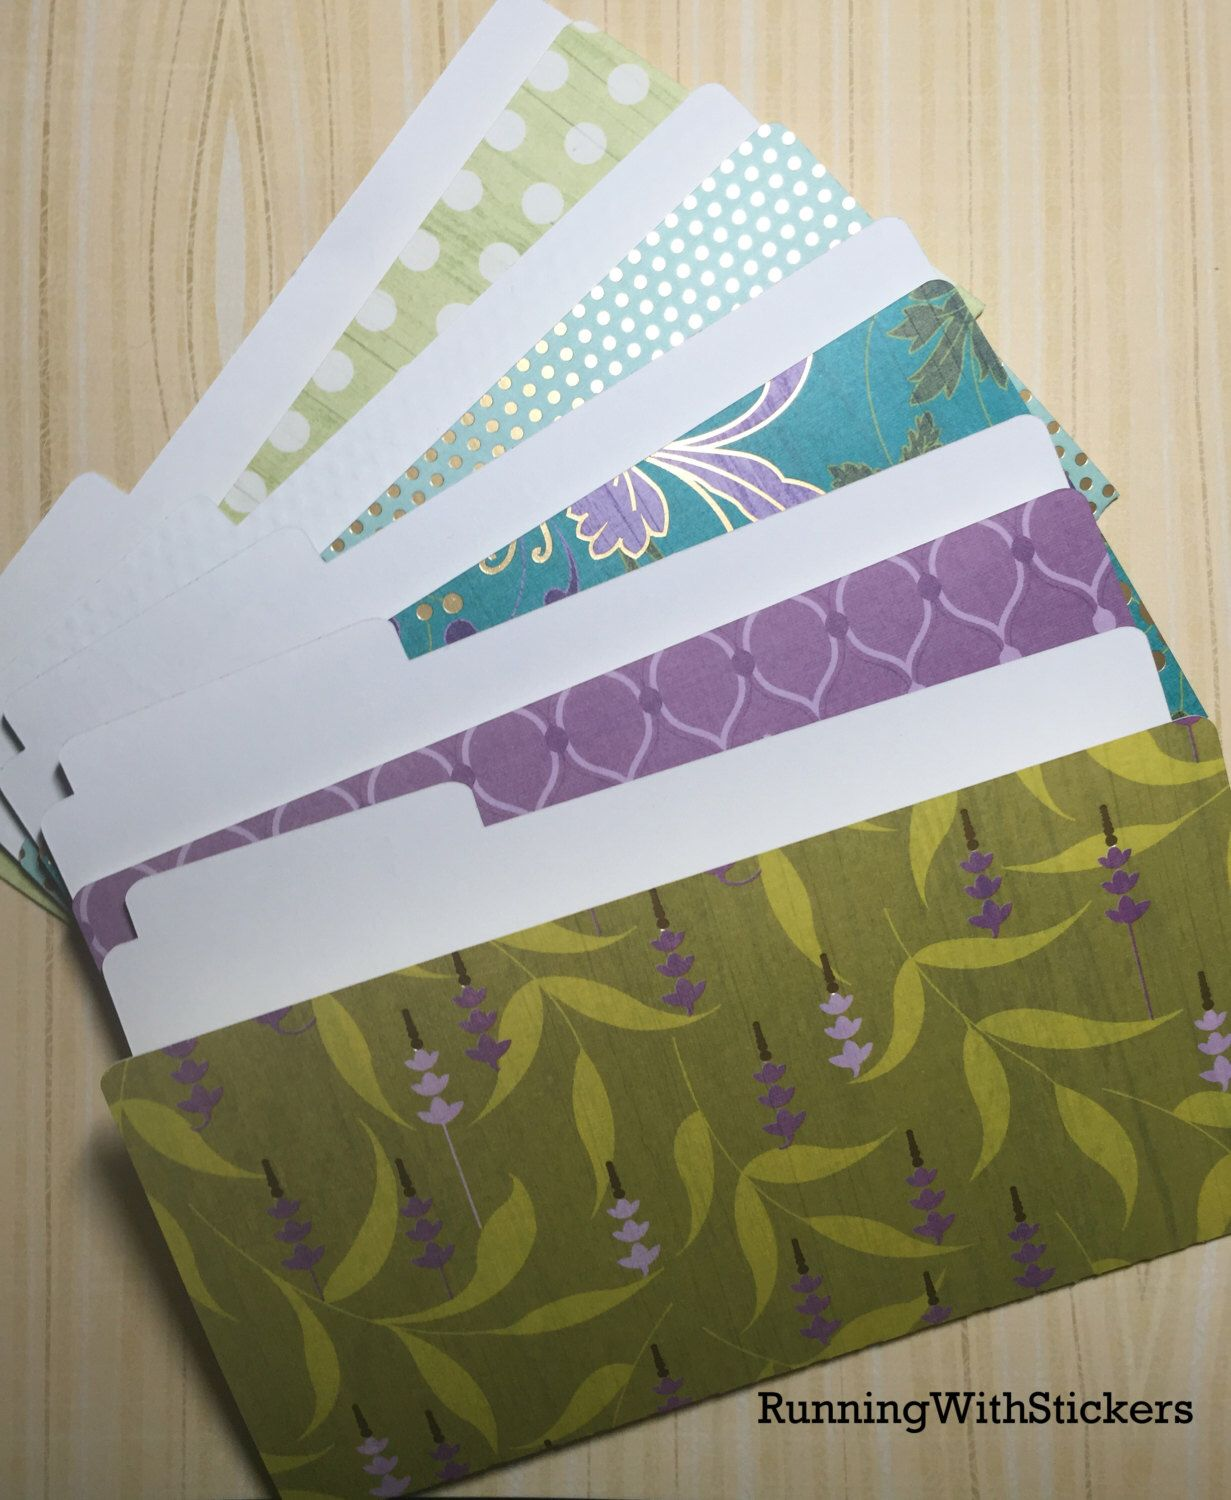 Diy file folder box to organize your stickers youtube - Mini File Folders One Of A Kind Green Teal Gold Lavender Great For Sticker Storage 0402161